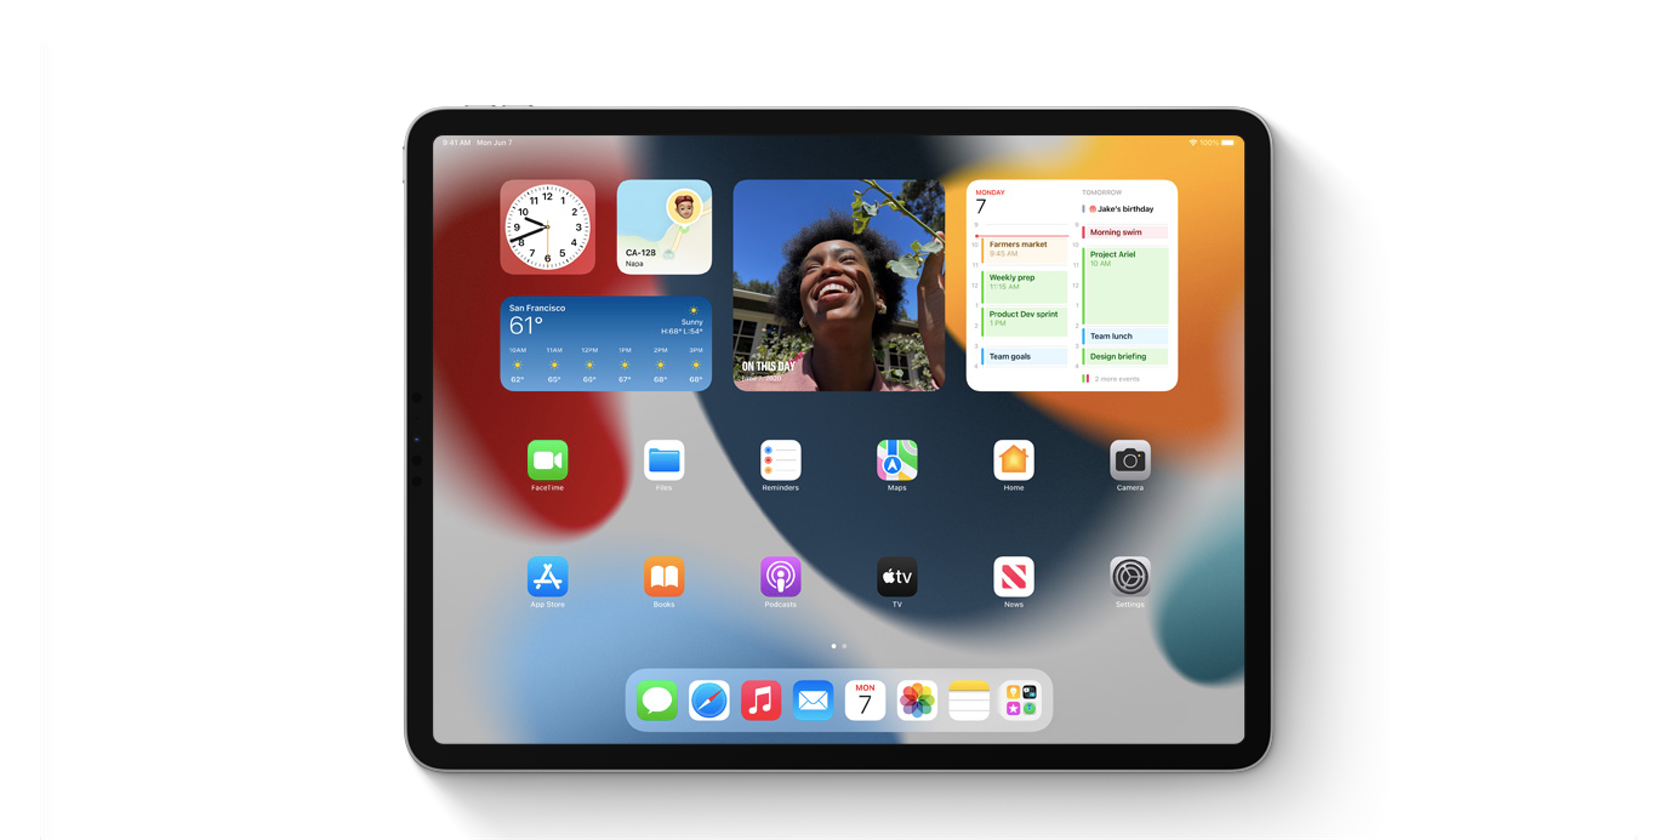 9 Top iPadOS 15 Features Announced at WWDC21